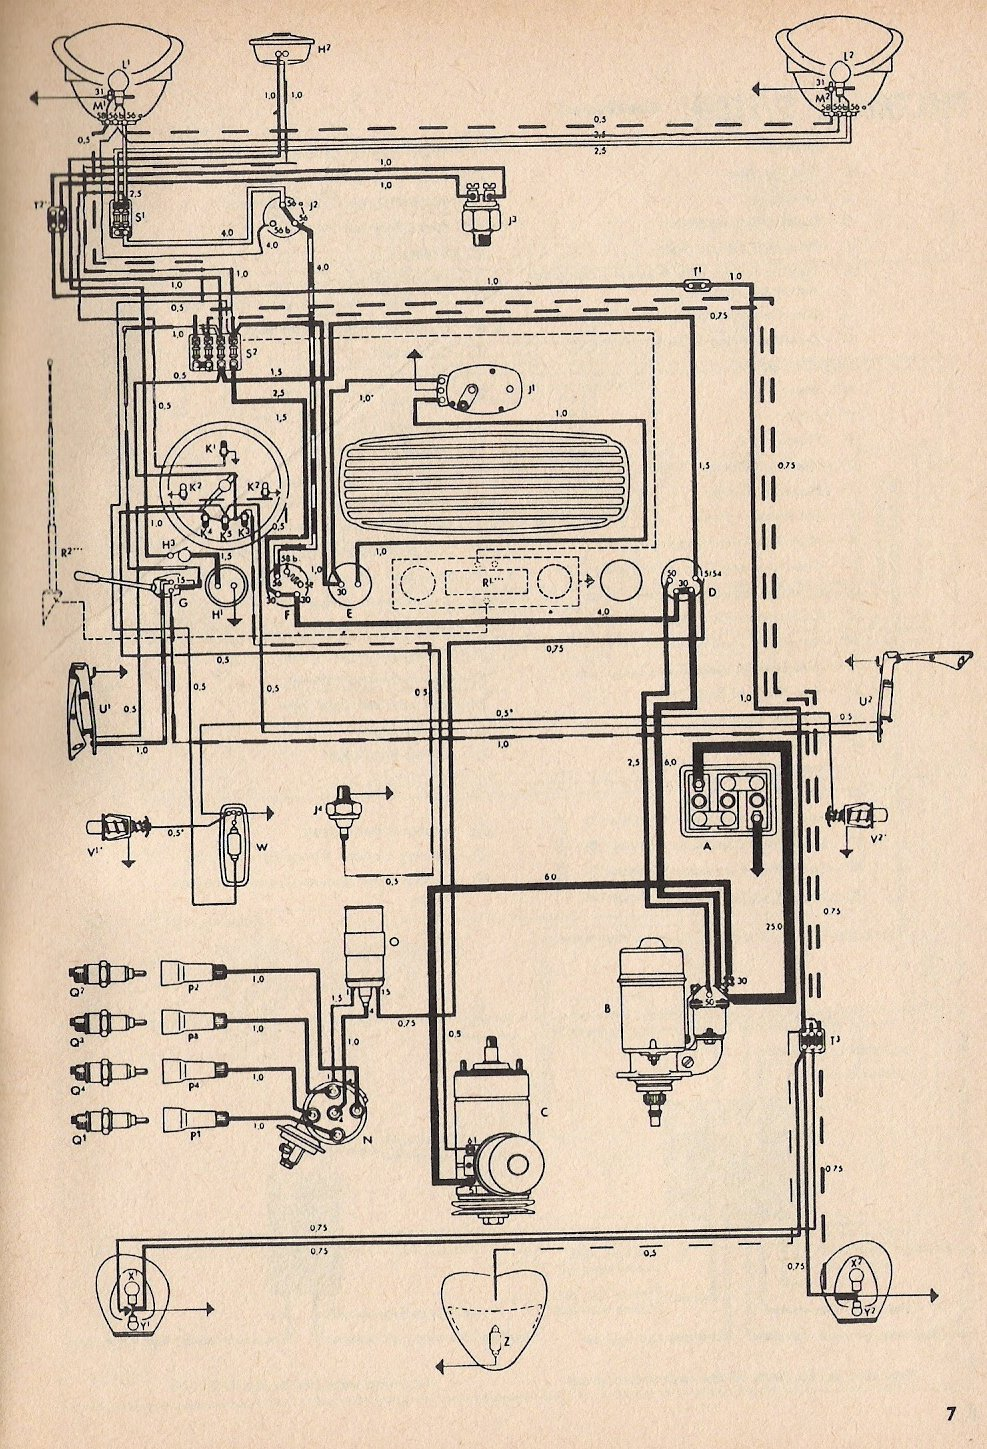 medium resolution of 1963 vw bug wiring simple wiring diagram schema 1963 vw engine wiring 1963 vw bug wiring